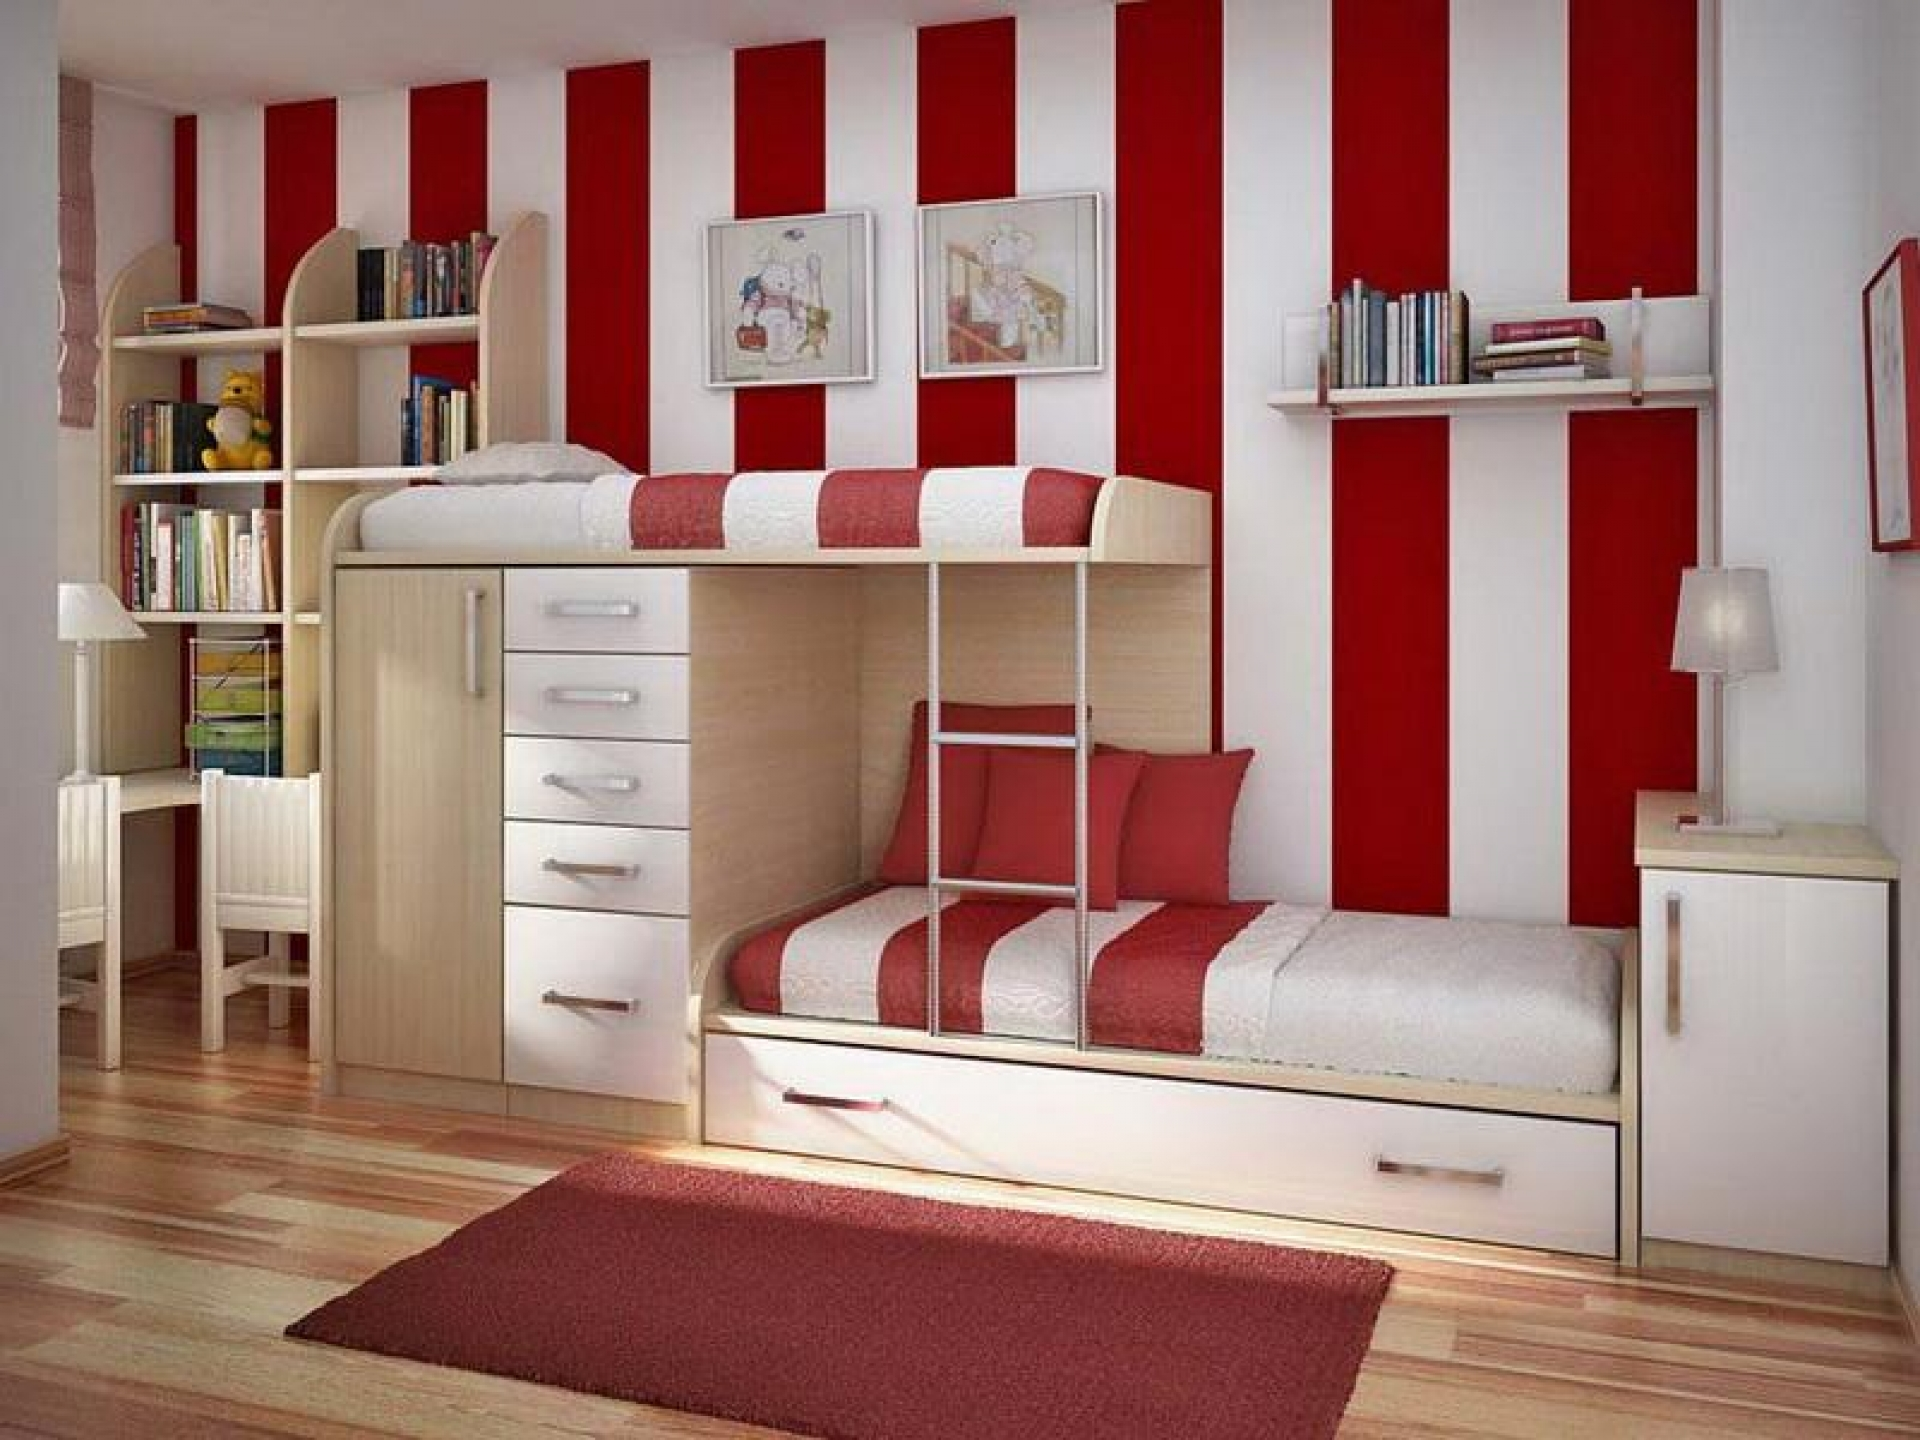 Creative Kids Bedroom Bunkbed Shared bedroom